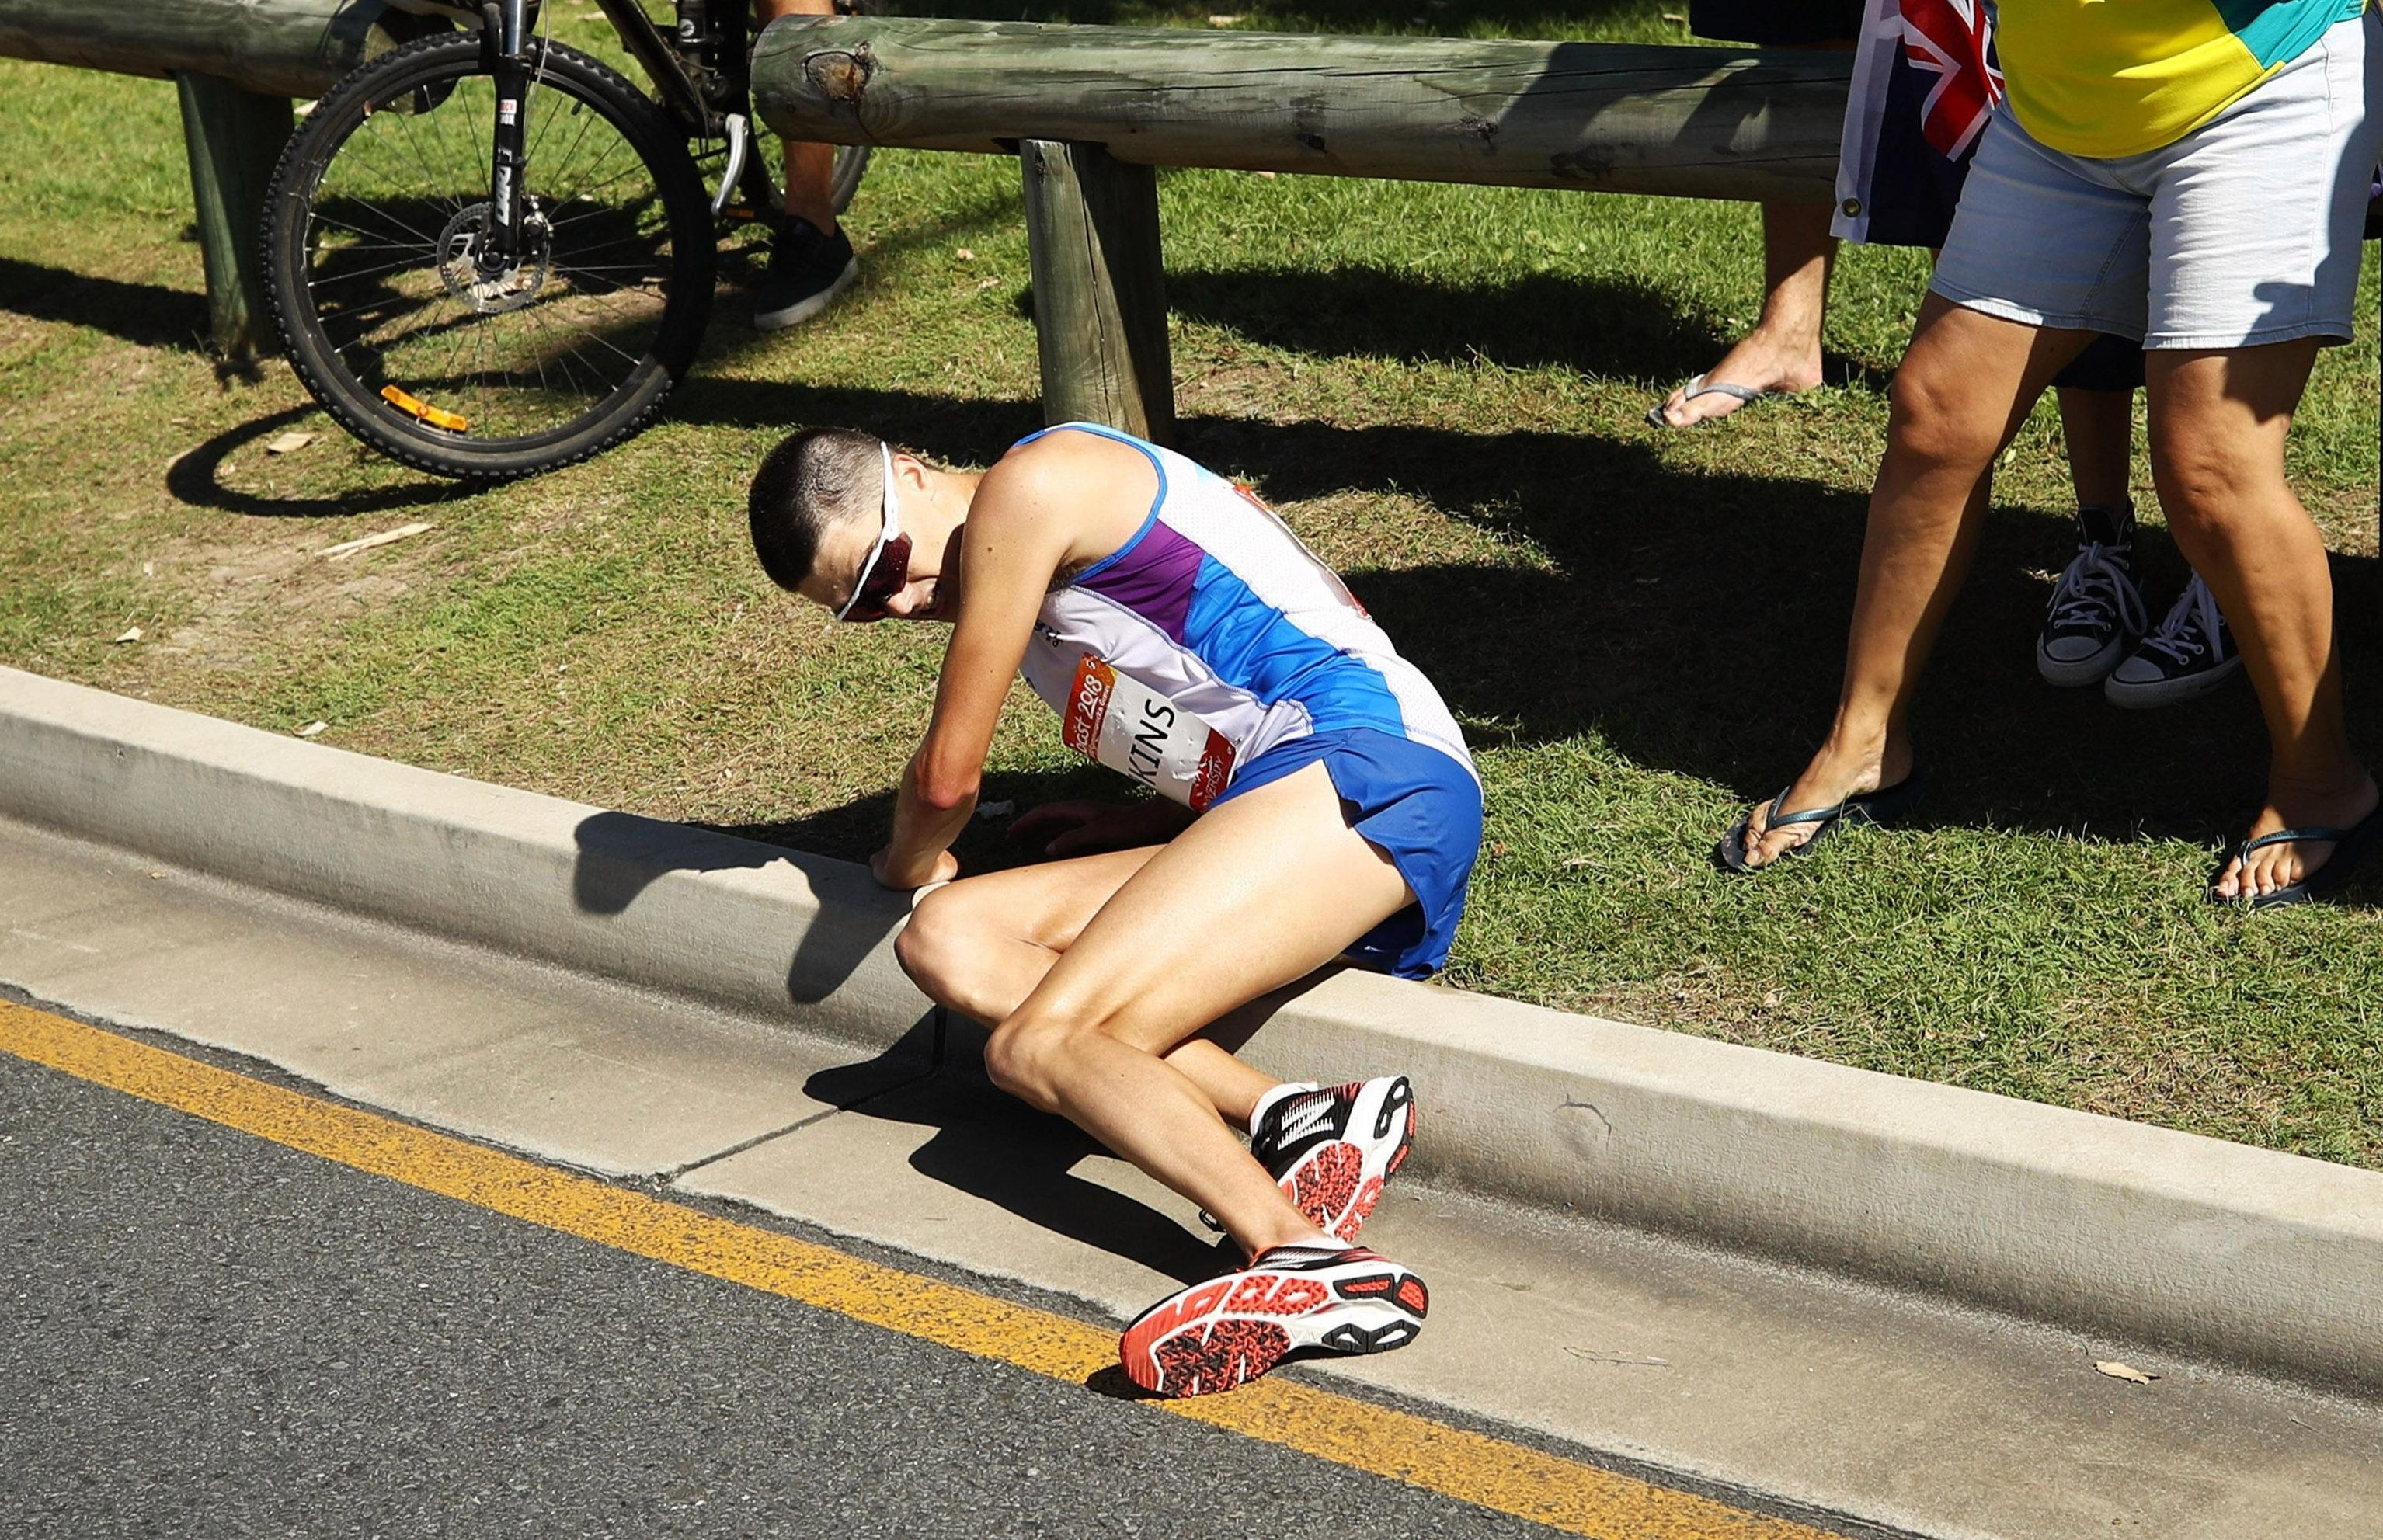 Callum Hawkins fell over a kerb at first while leading the marathon